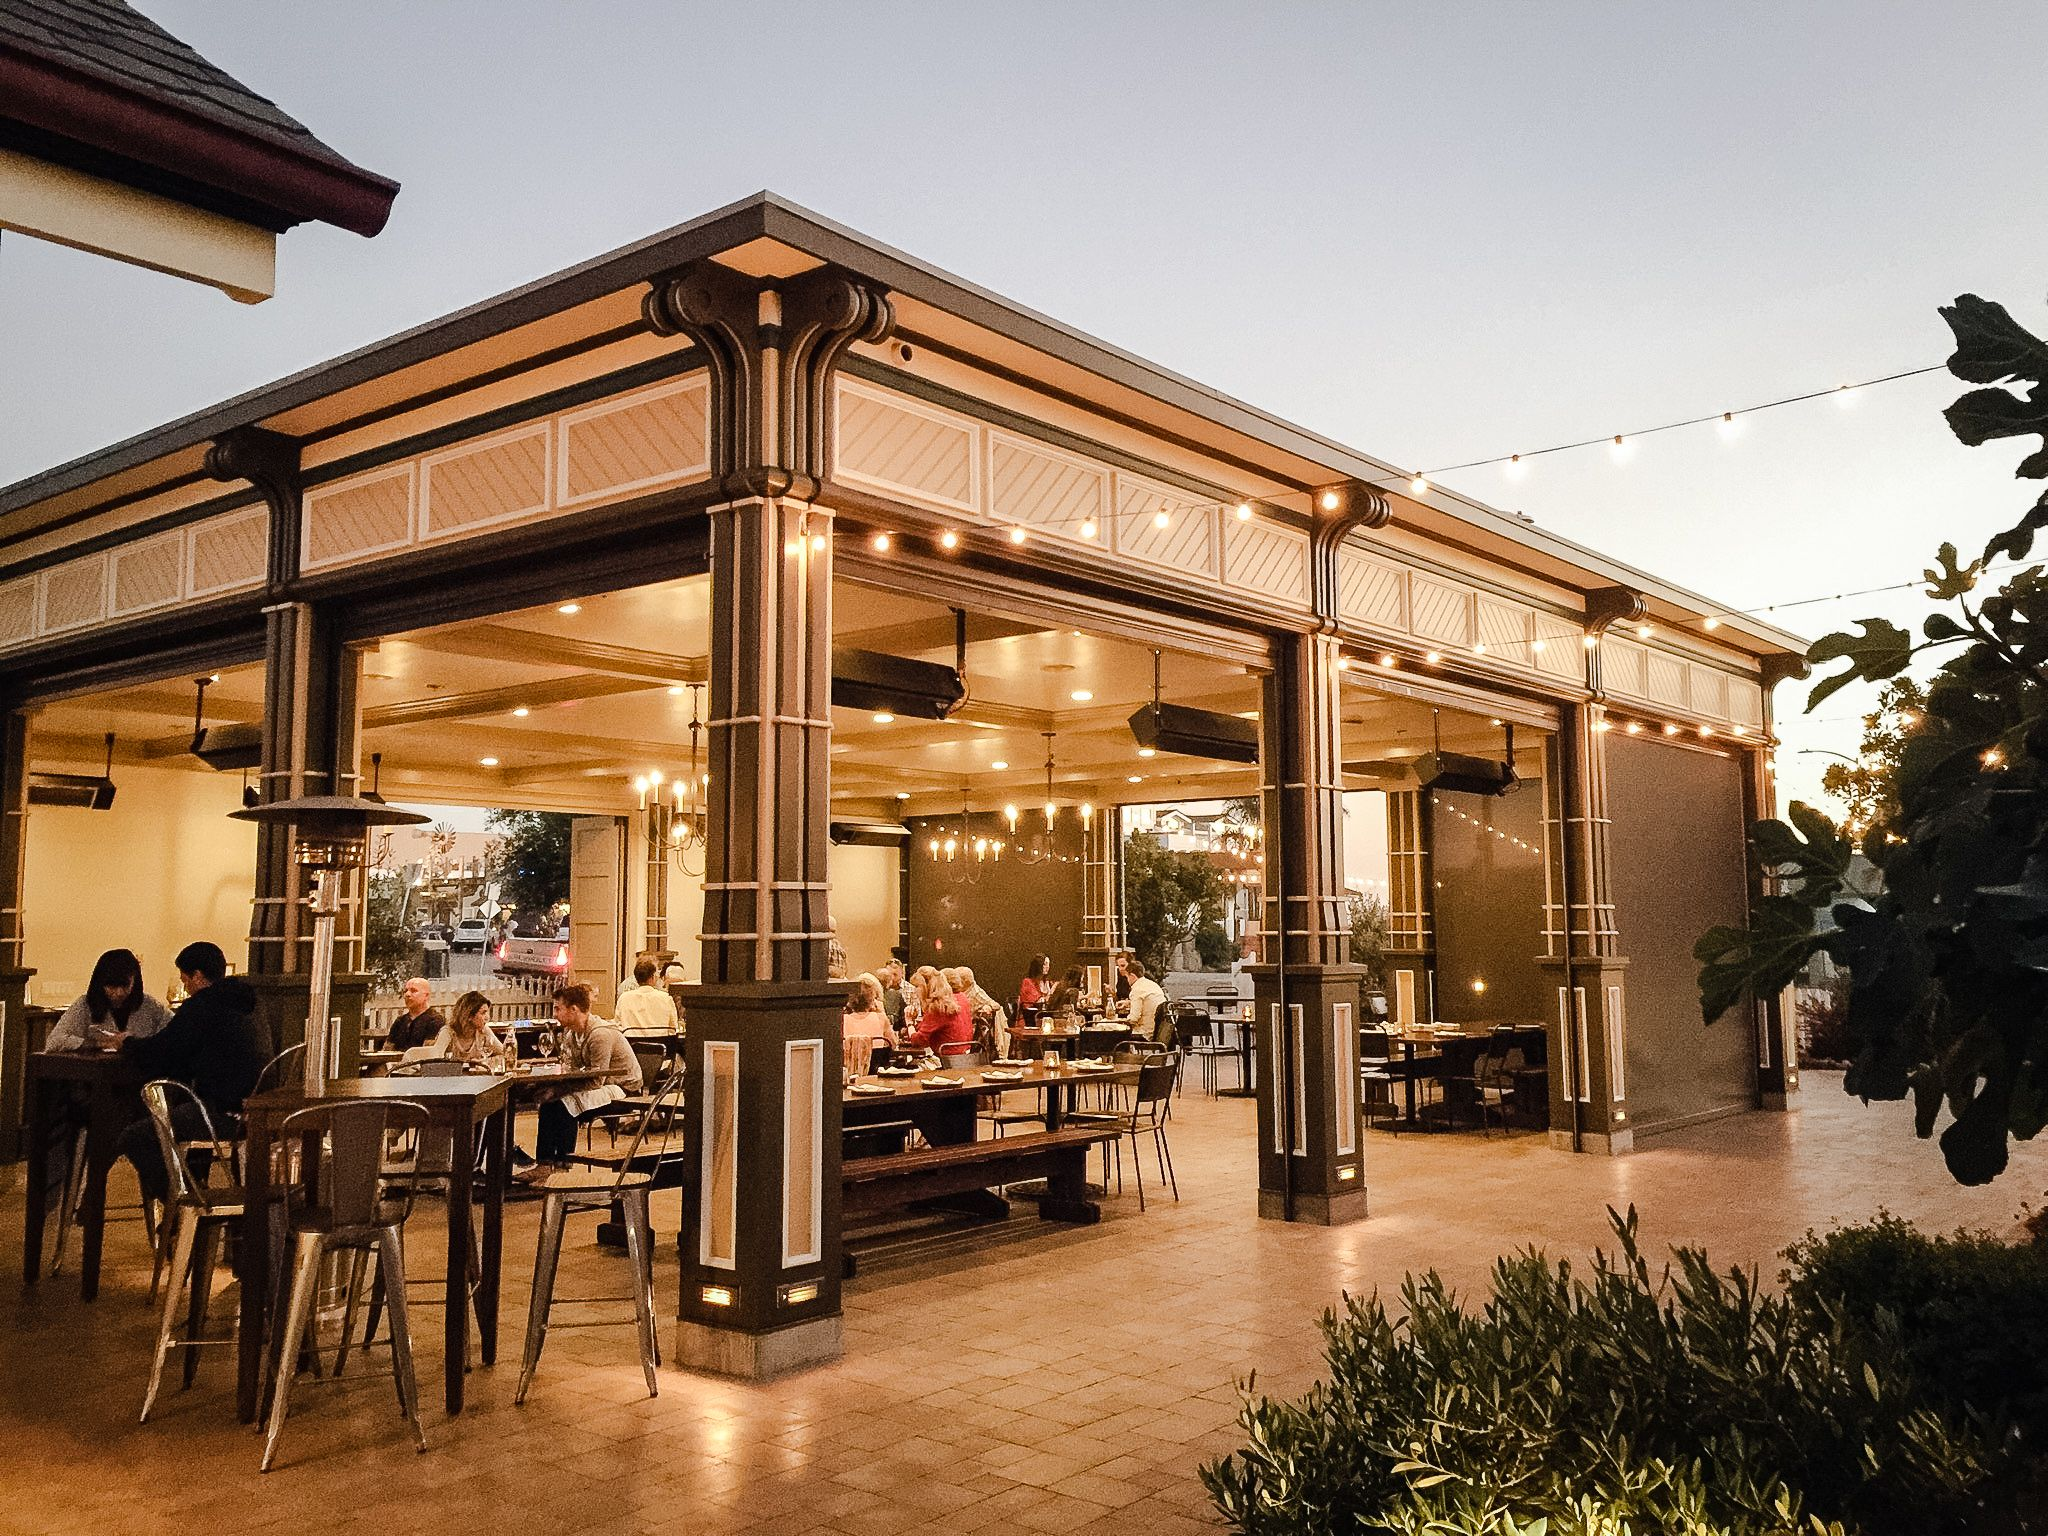 Openair dining and wedding venue on California's Central